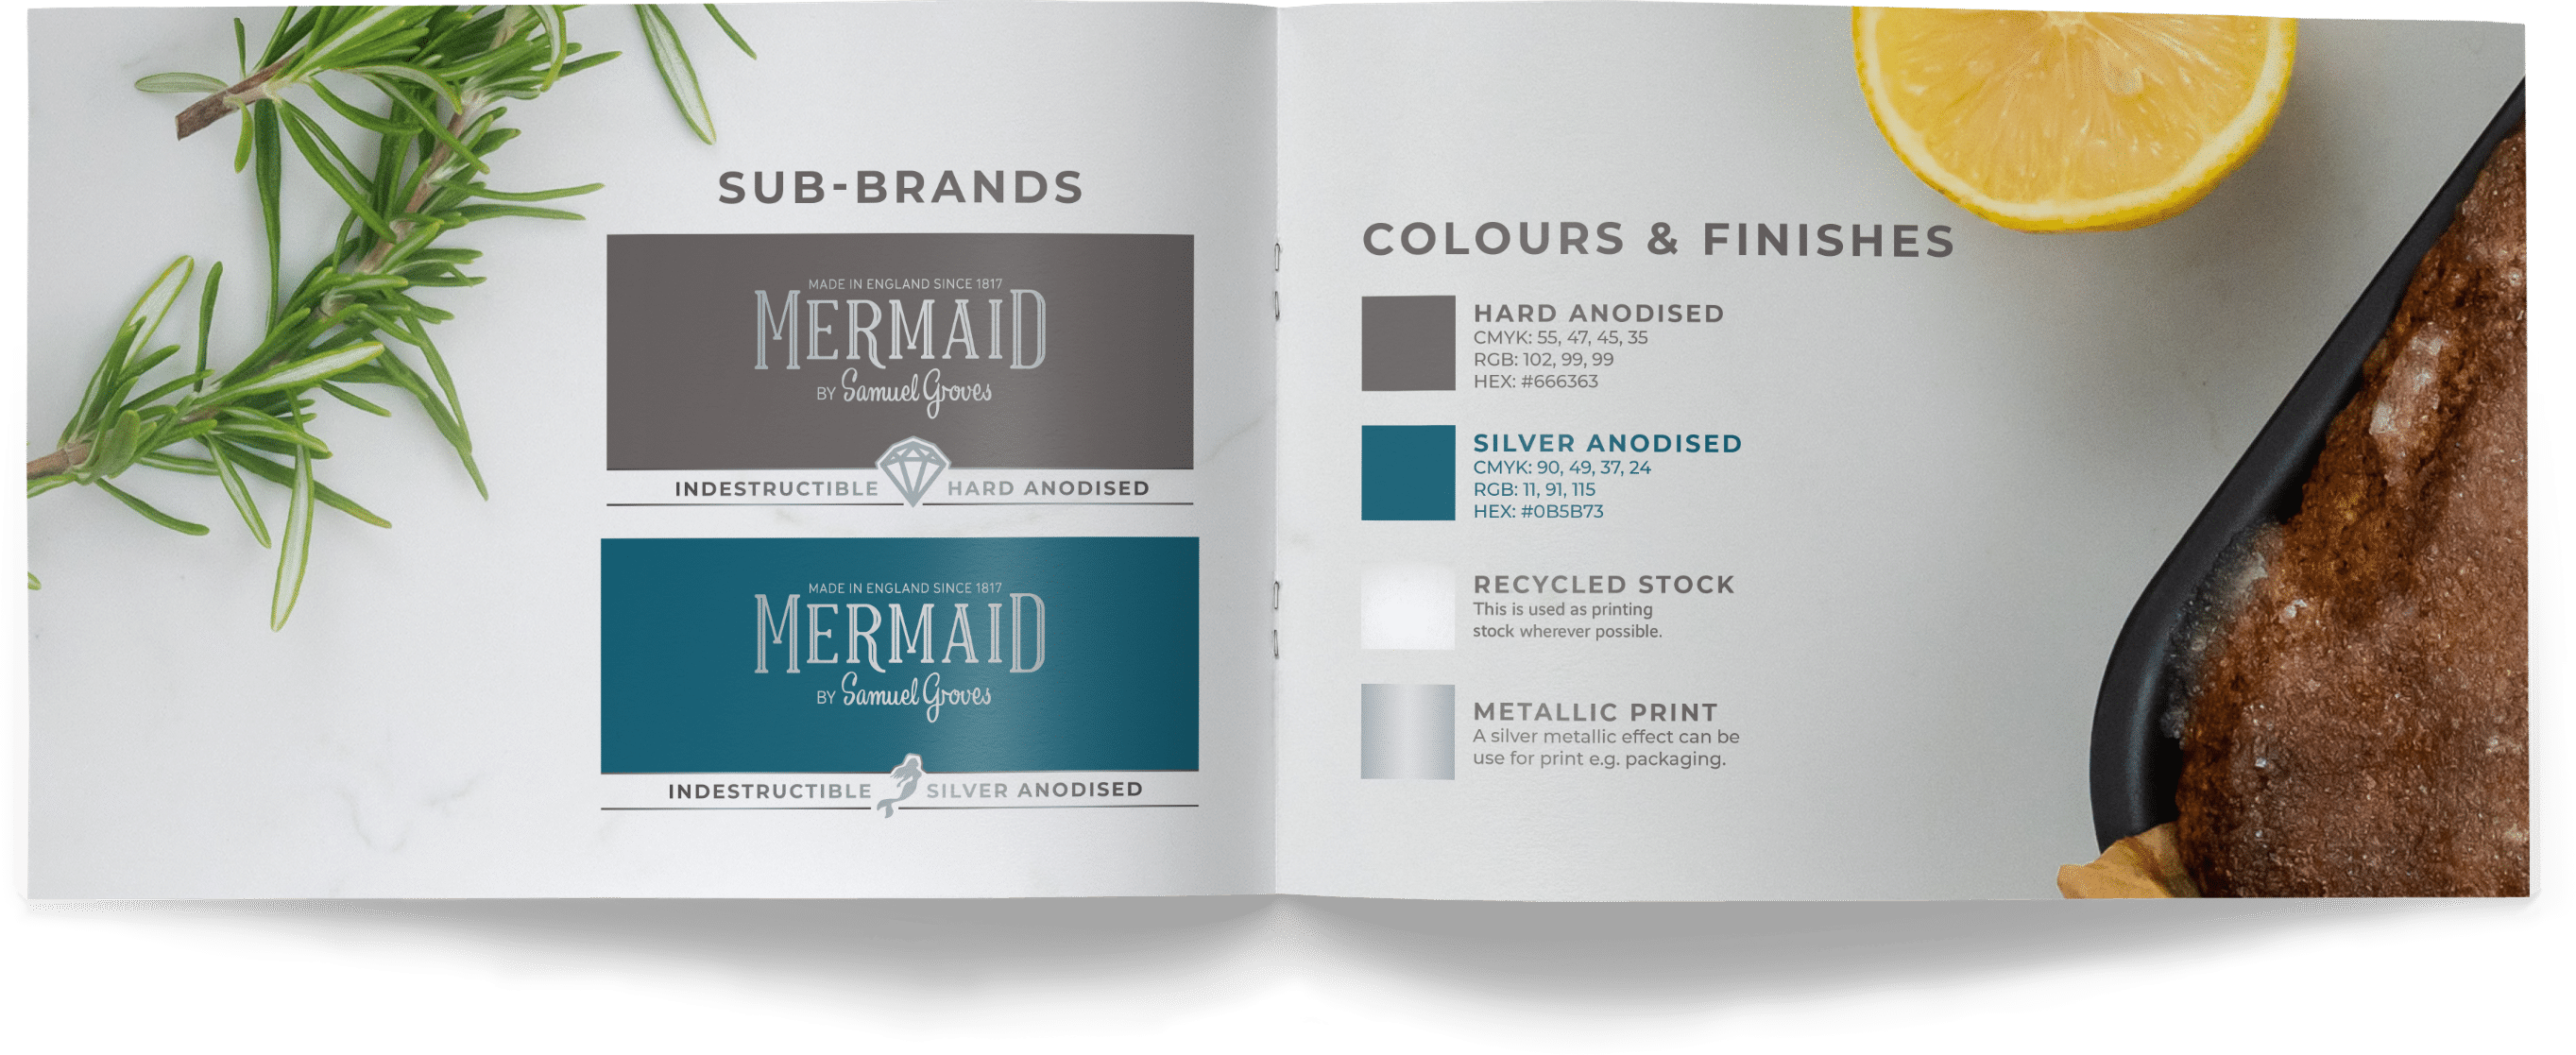 mermaid bakeware product packaging brand guidelines, sub brands pages